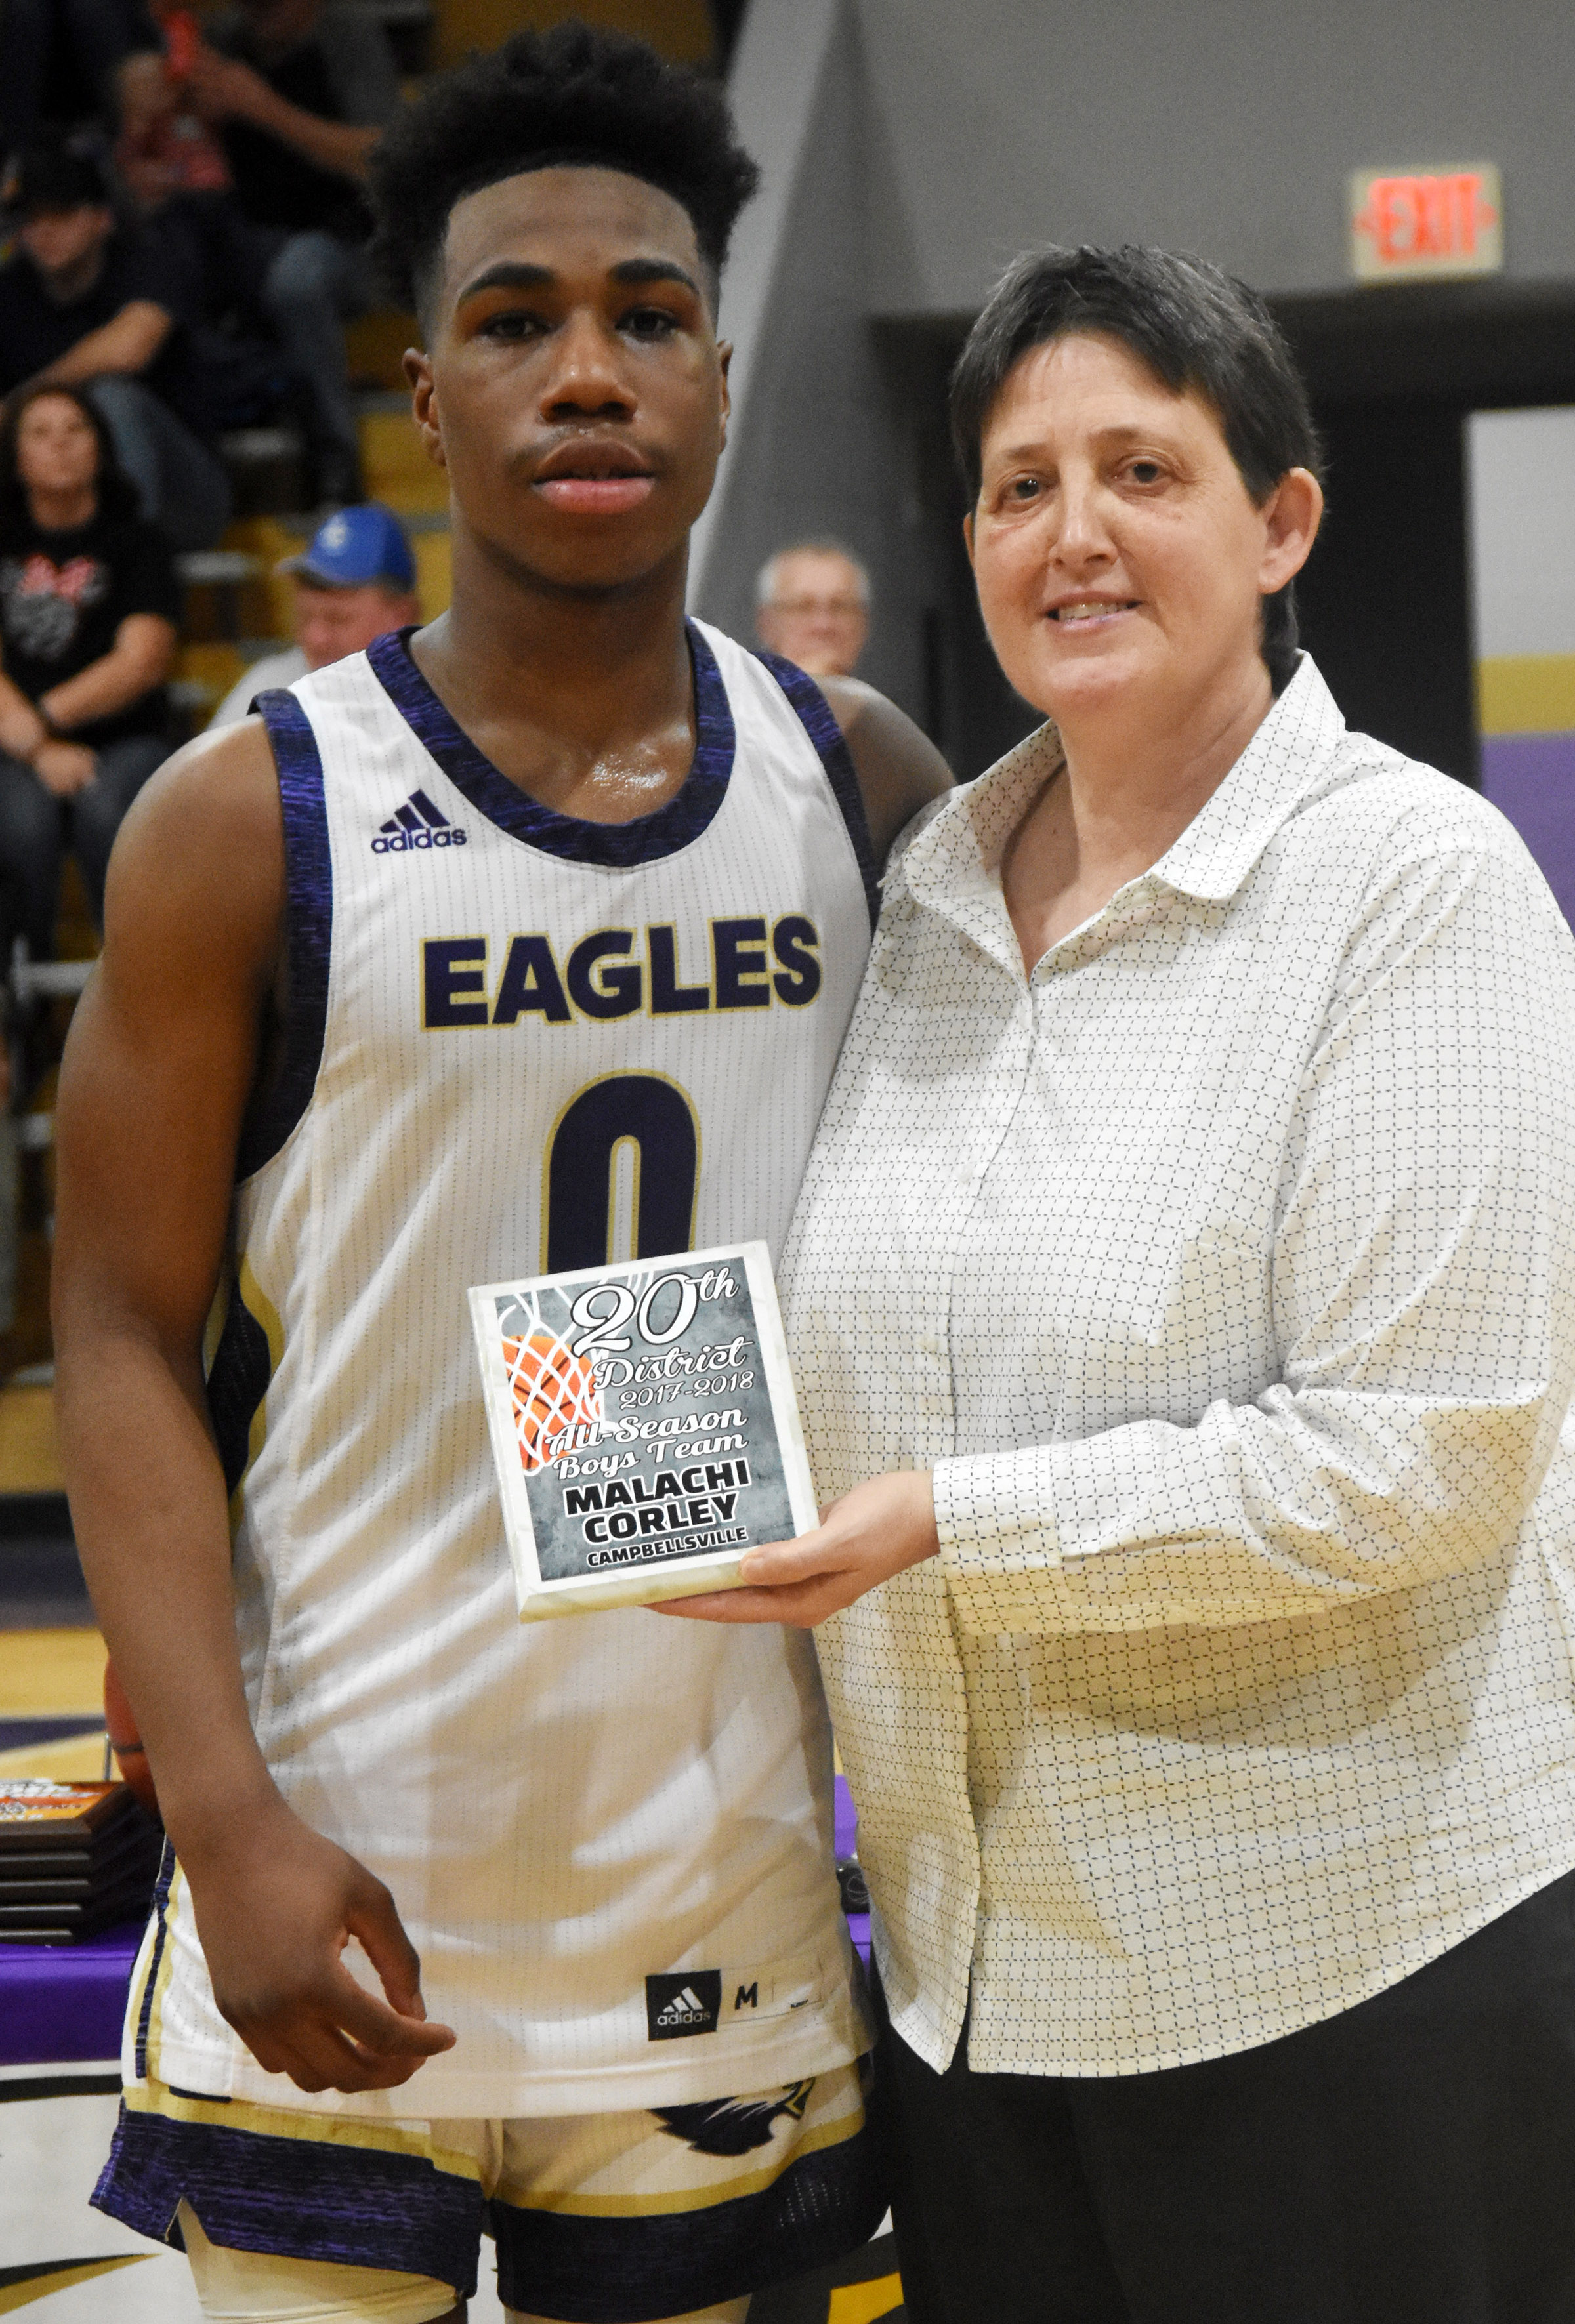 CHS sophomore Malachi Corley receives an all-season award from CHS Assistant Athletic Director Katie Wilkerson.